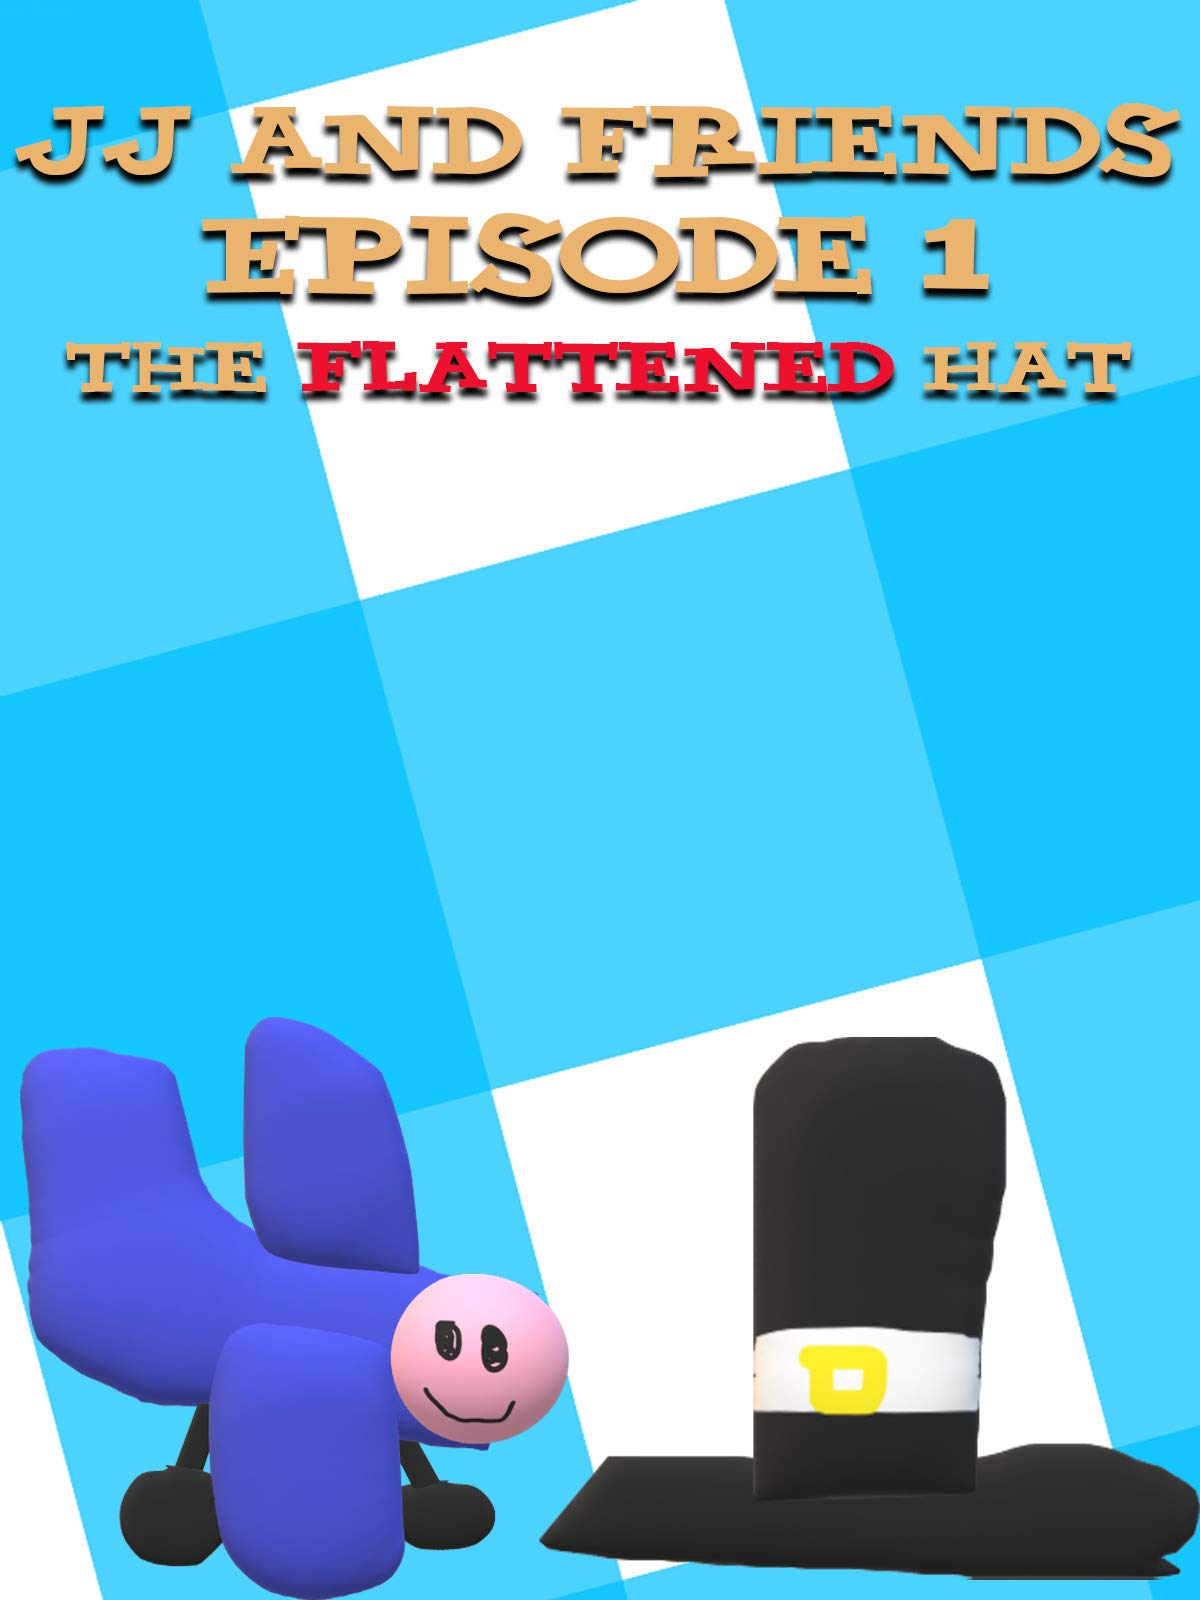 JJ and Friends - Episode 1. The Flattened Hat